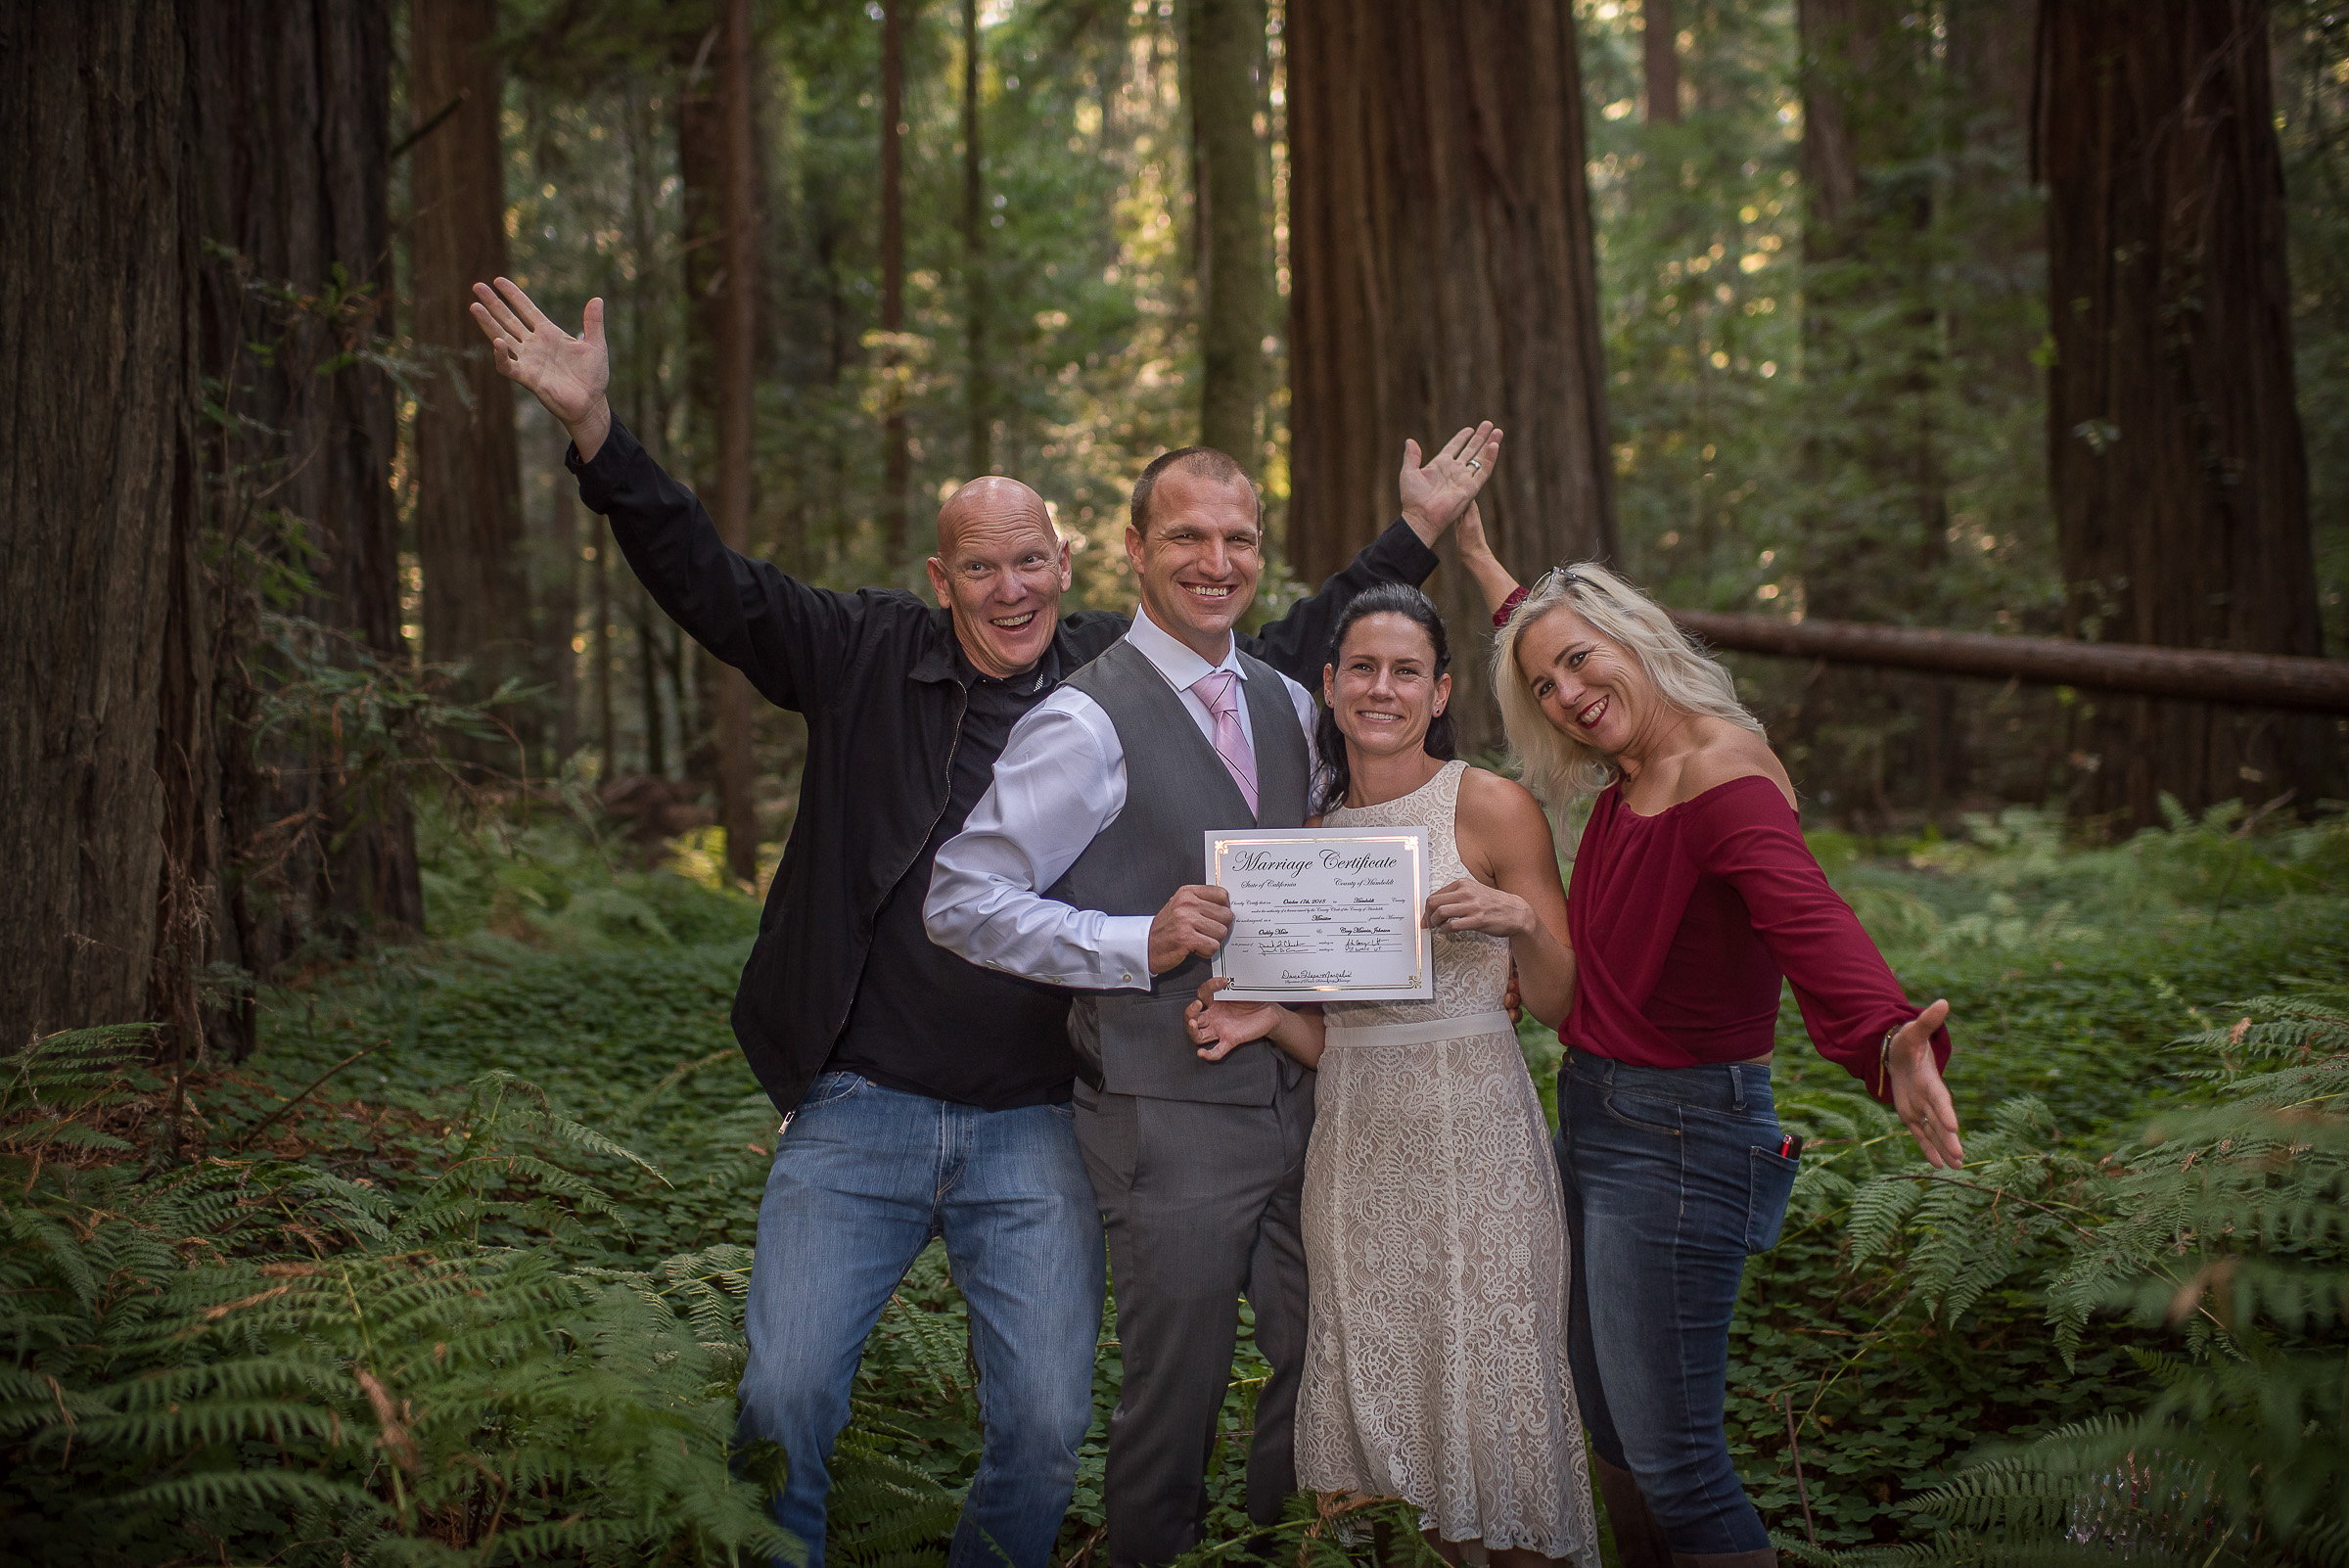 AVENUE OF THE GIANTS MAGICAL ELOPEMENT PARKYS PICS-14.JPG